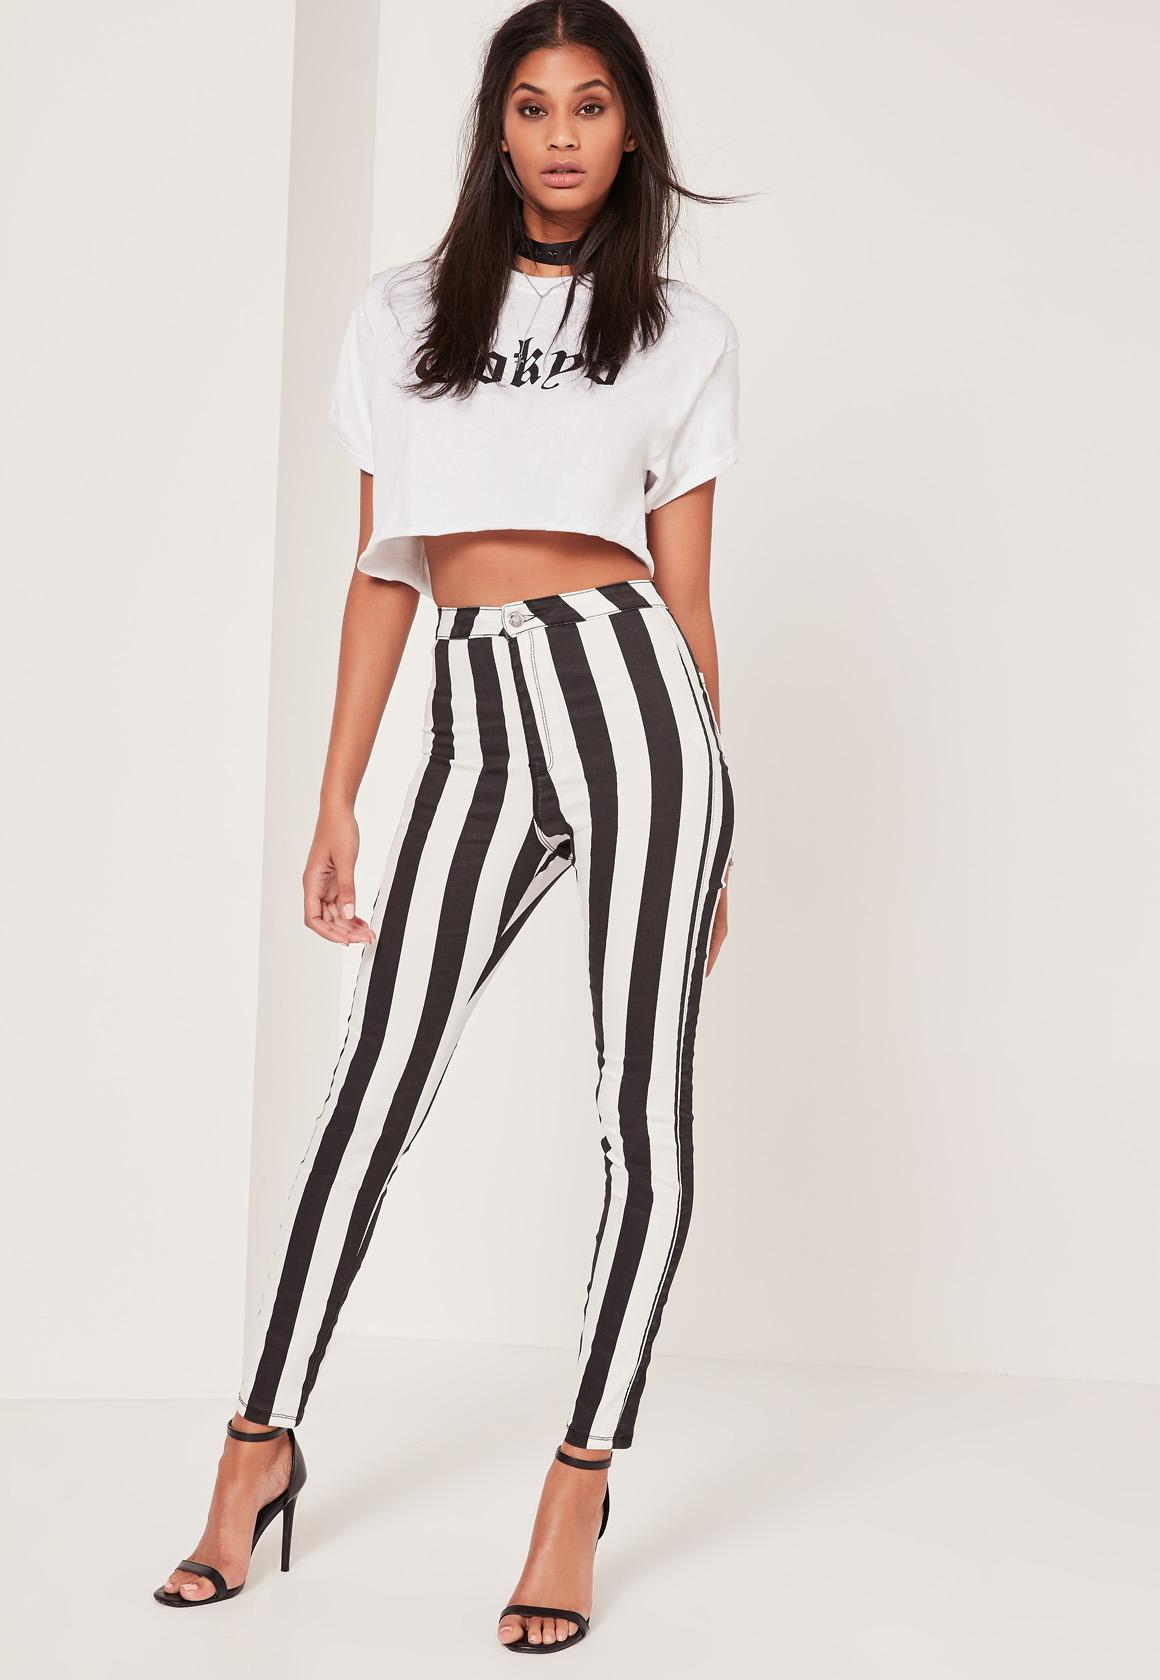 Cheapest Online Outlet Sale Missguided Flare Highwaisted Stripe Jeans vfJz4555C